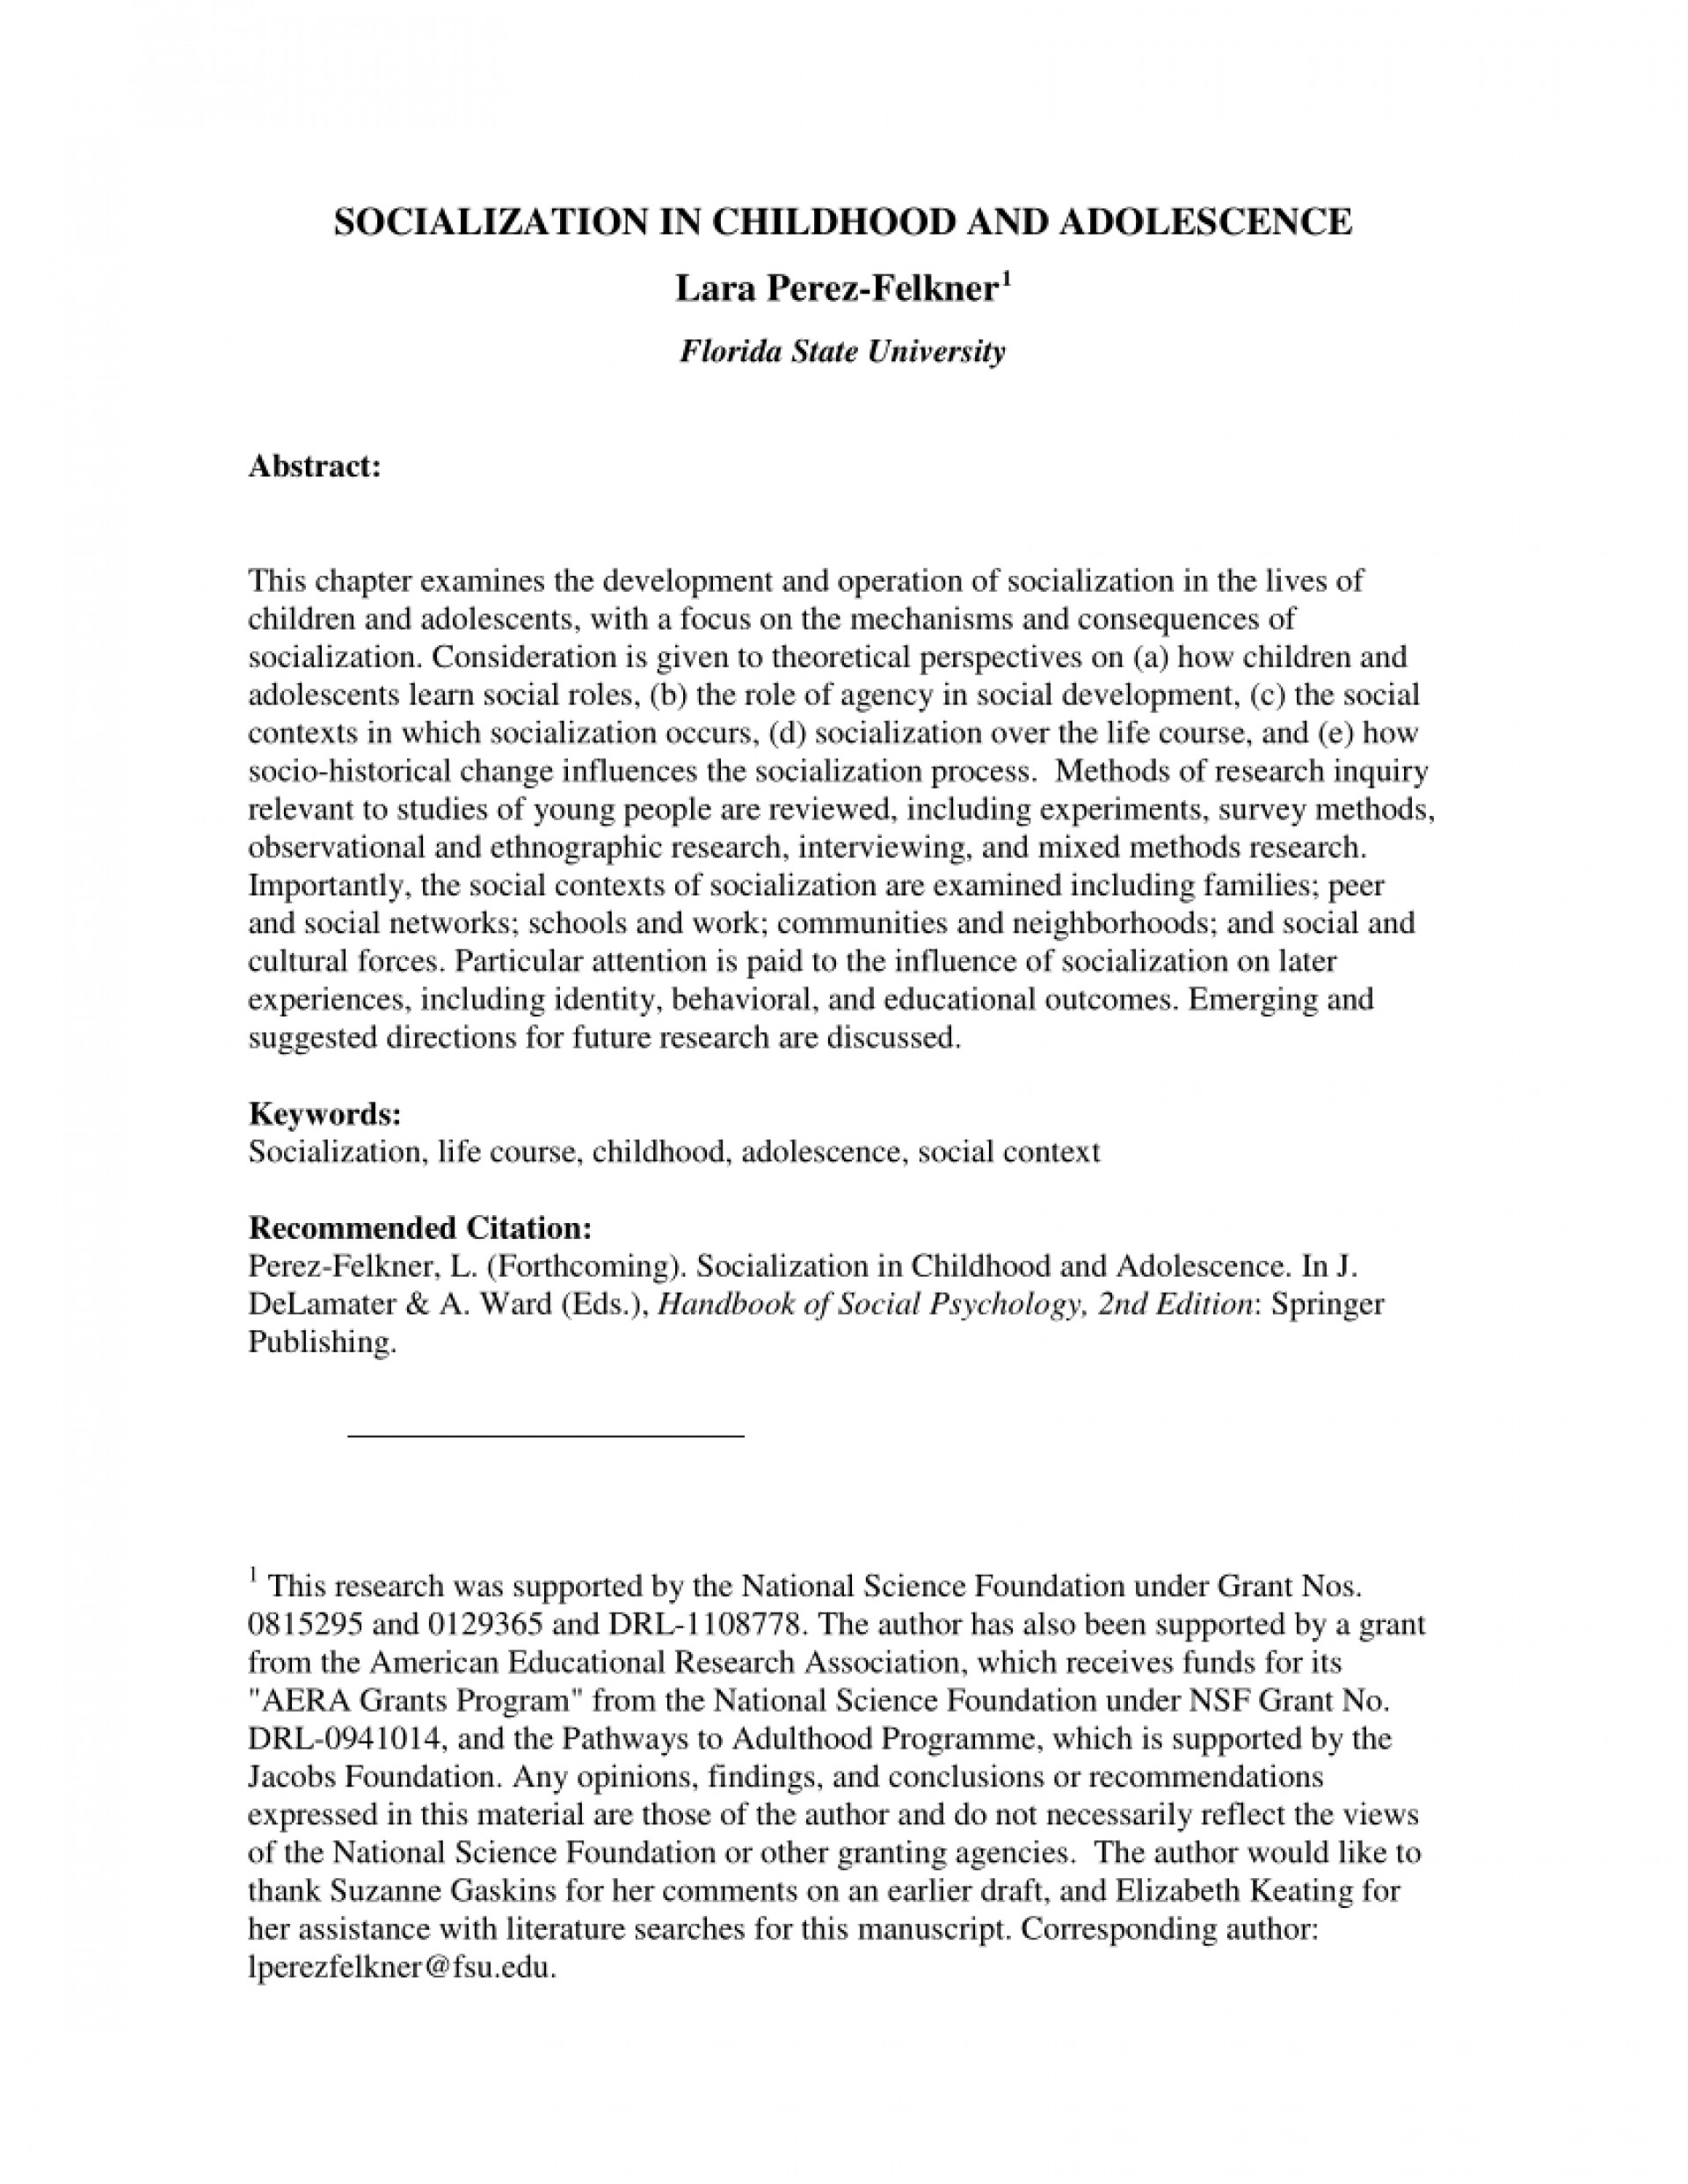 002 Research Paper Largepreview Abstract About Child And Adolescent Wondrous Development Sample Pdf 1920